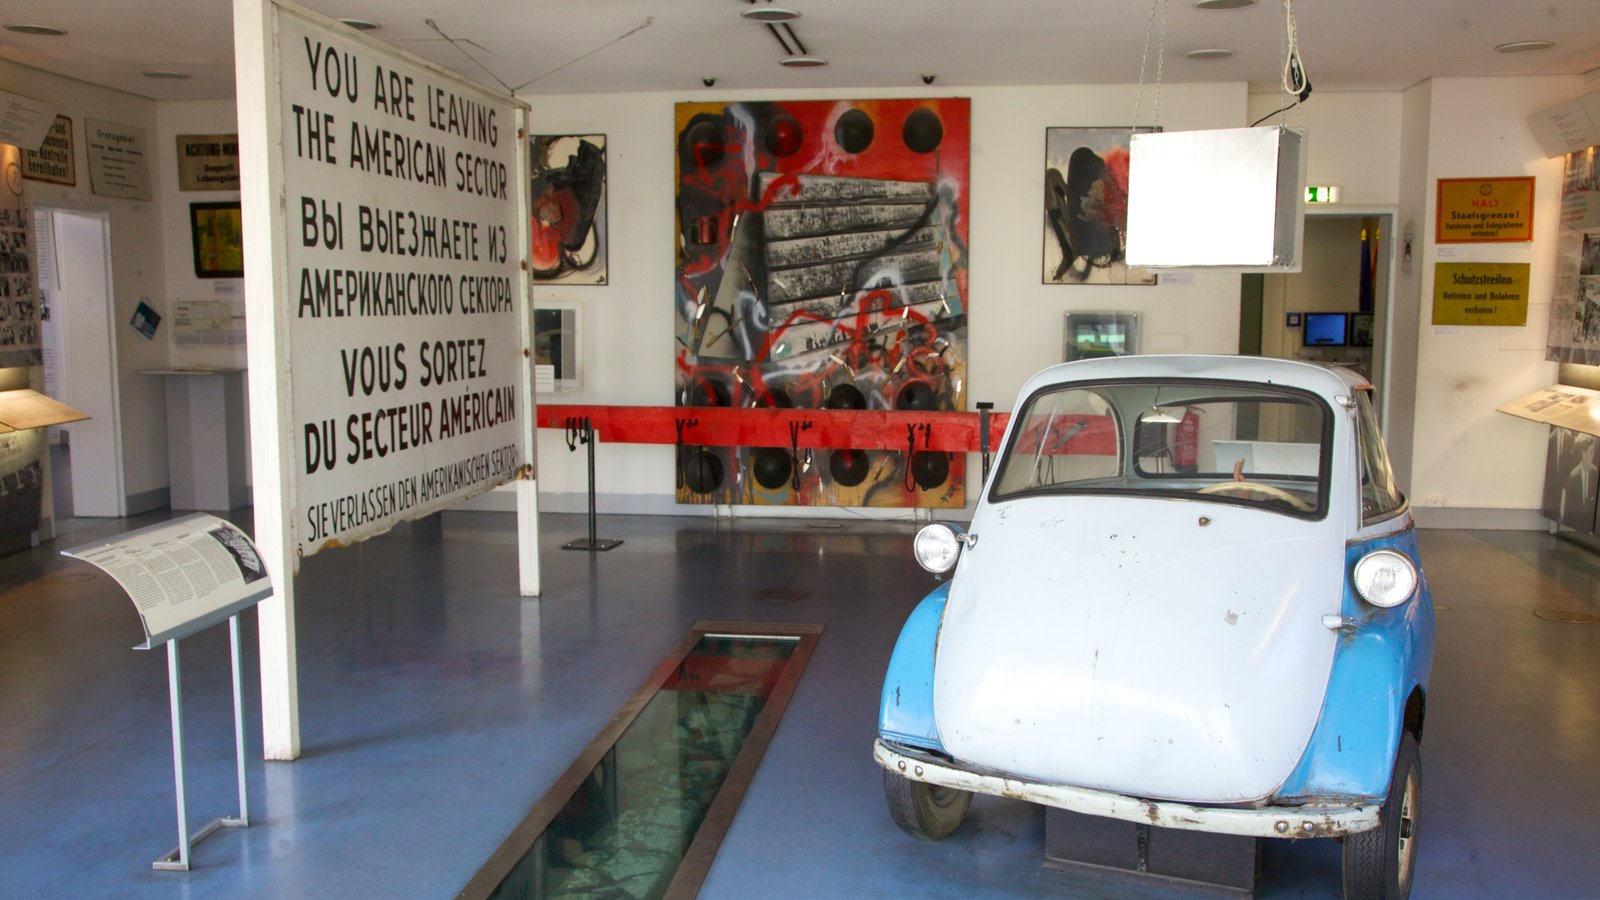 Checkpoint Charlie Museum featuring interior views and signage